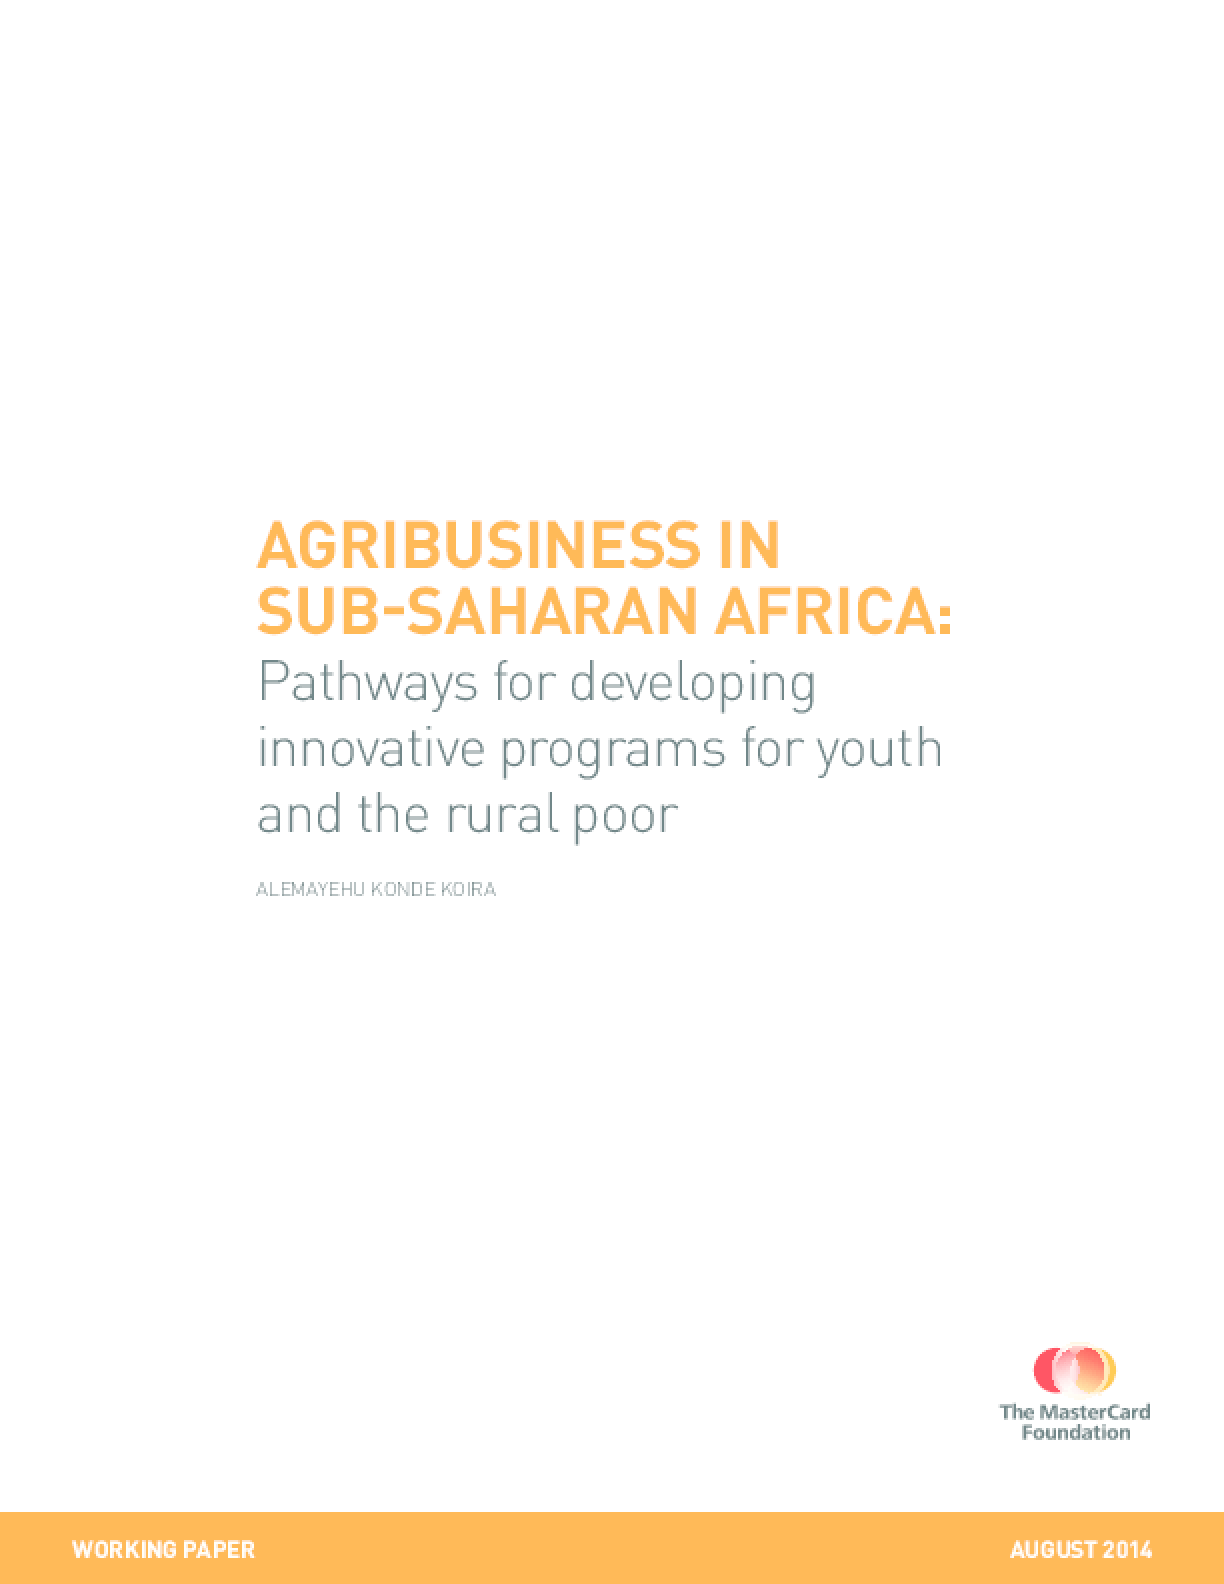 Agribusiness in Sub-Saharan Africa: Pathways for Developing Innovative Programs for Youth and the Rural Poor